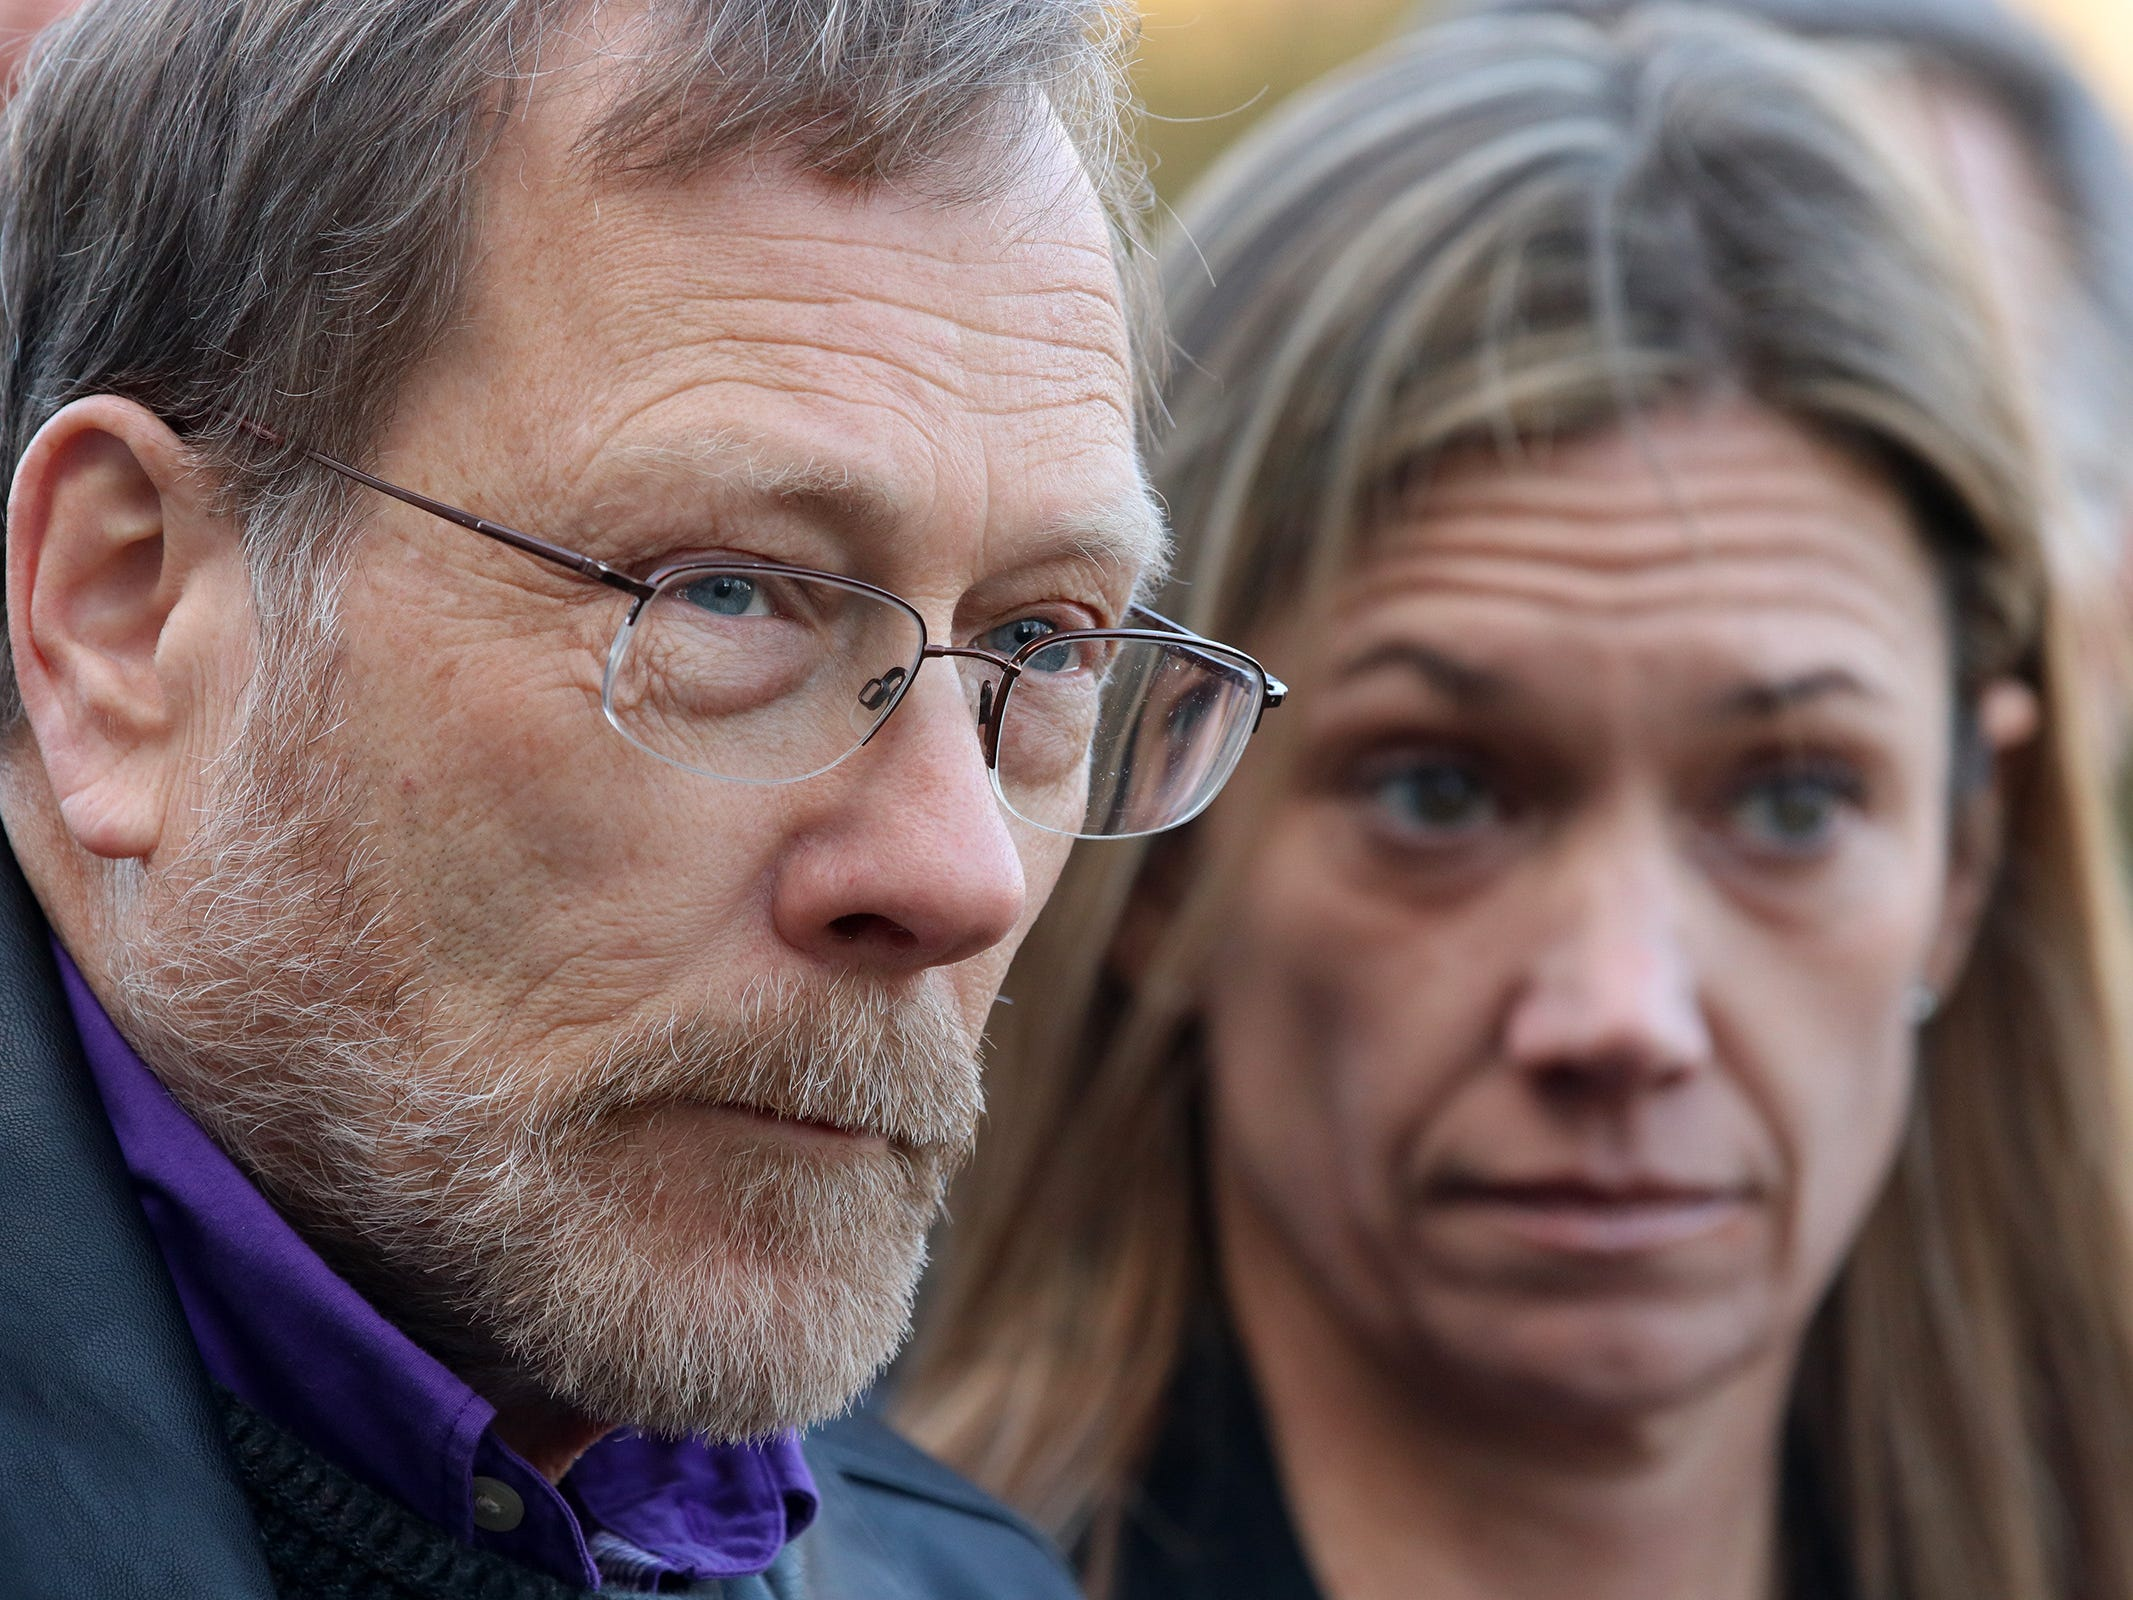 Michael Stern, father of Sarah Stern, speaks during a press conference with members of the Monmouth County Prosecutor's Office after the the jury found Liam McAtasney guilty on all charges in the murder of former high school classmate, Sarah Stern, at the Monmouth County Courthouse in Freehold, NJ Tuesday, February 26, 2019.